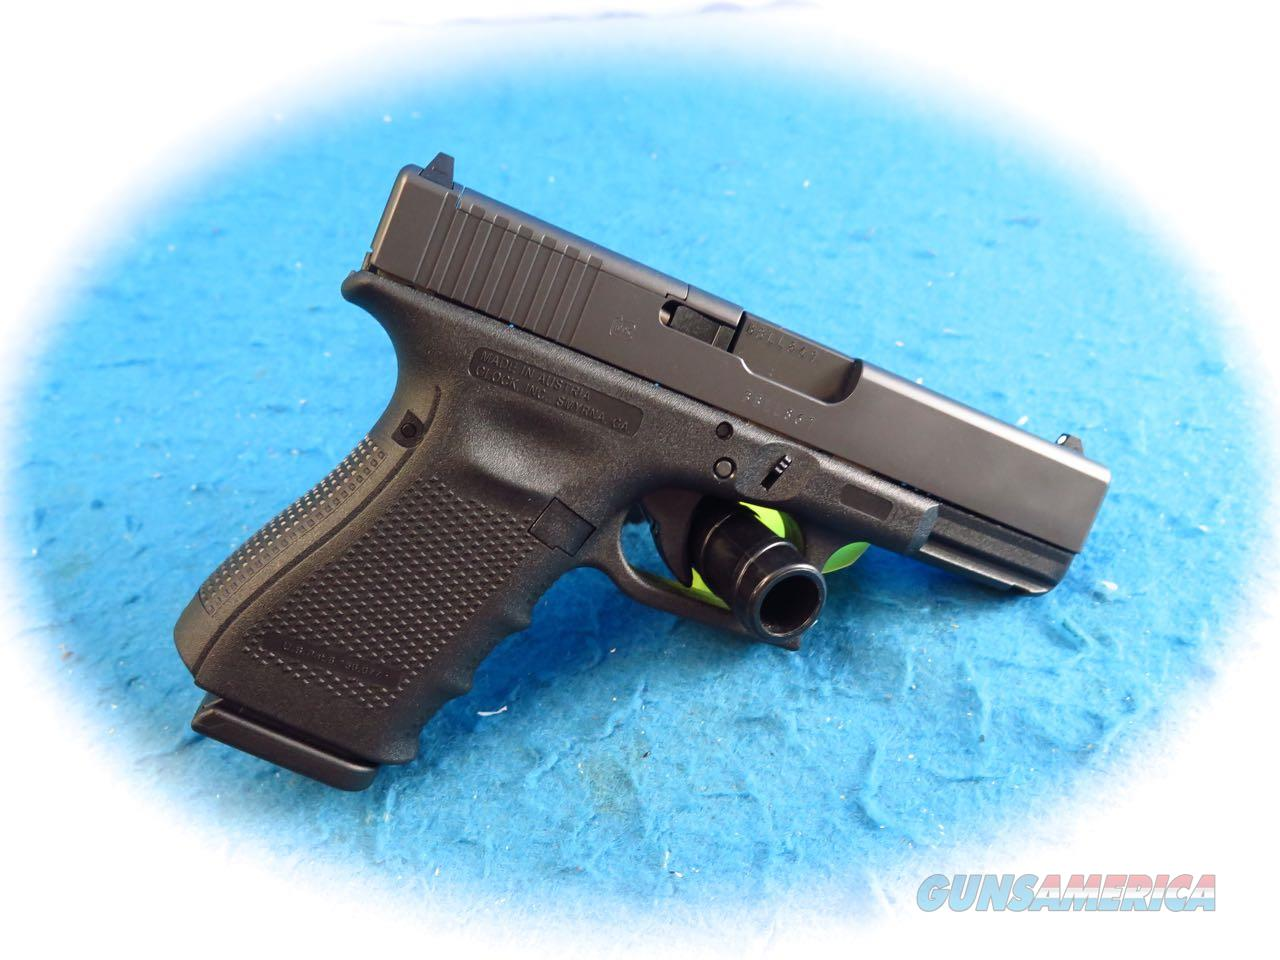 Glock Model 19 Gen 4 MOS 9mm Pistol **New**  Guns > Pistols > Glock Pistols > 19